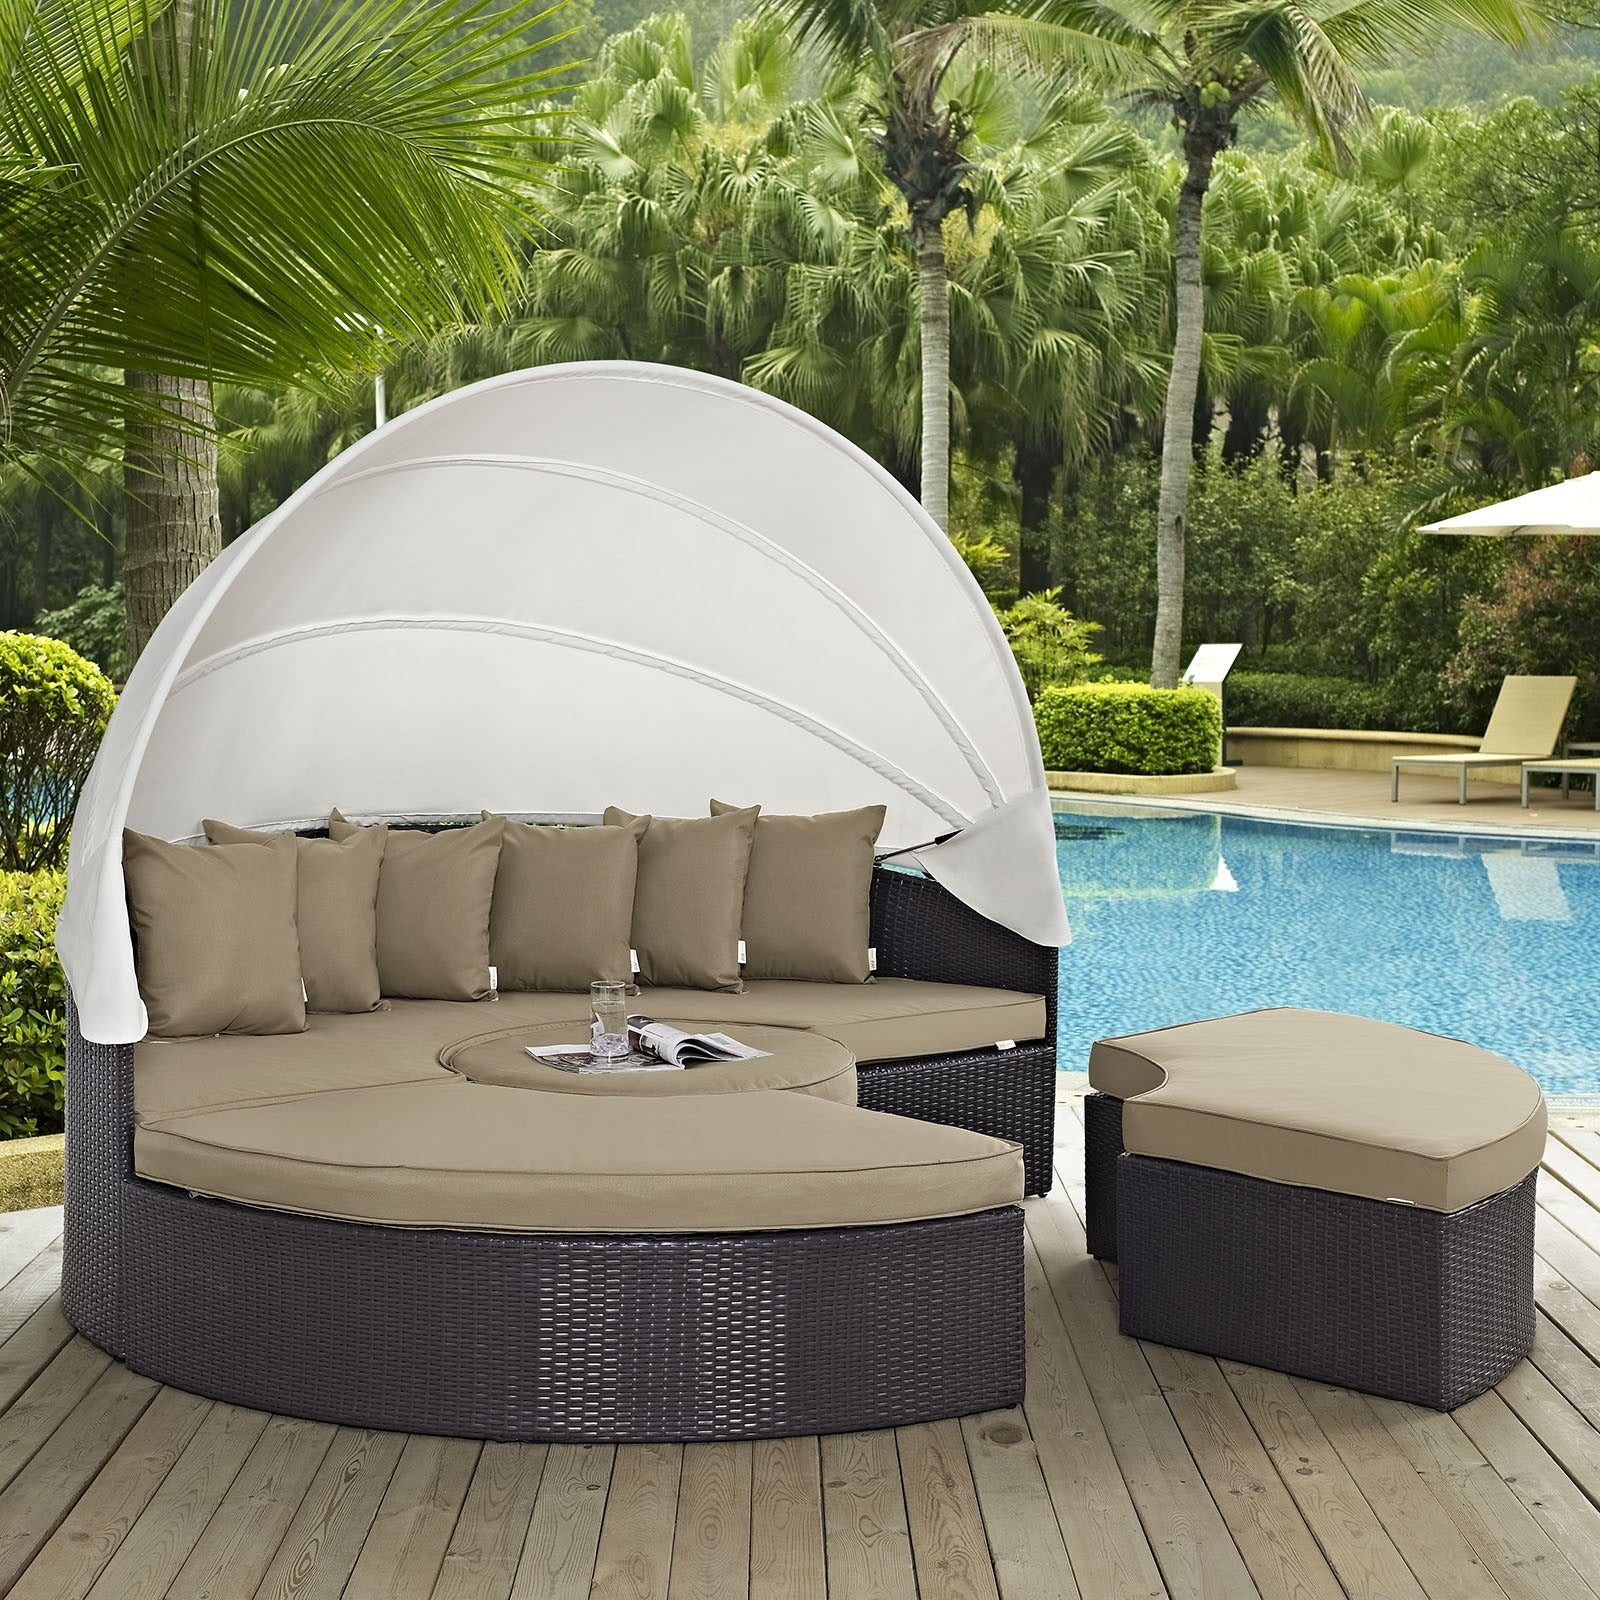 Barbados Outdoor Patio Daybed with Canopy